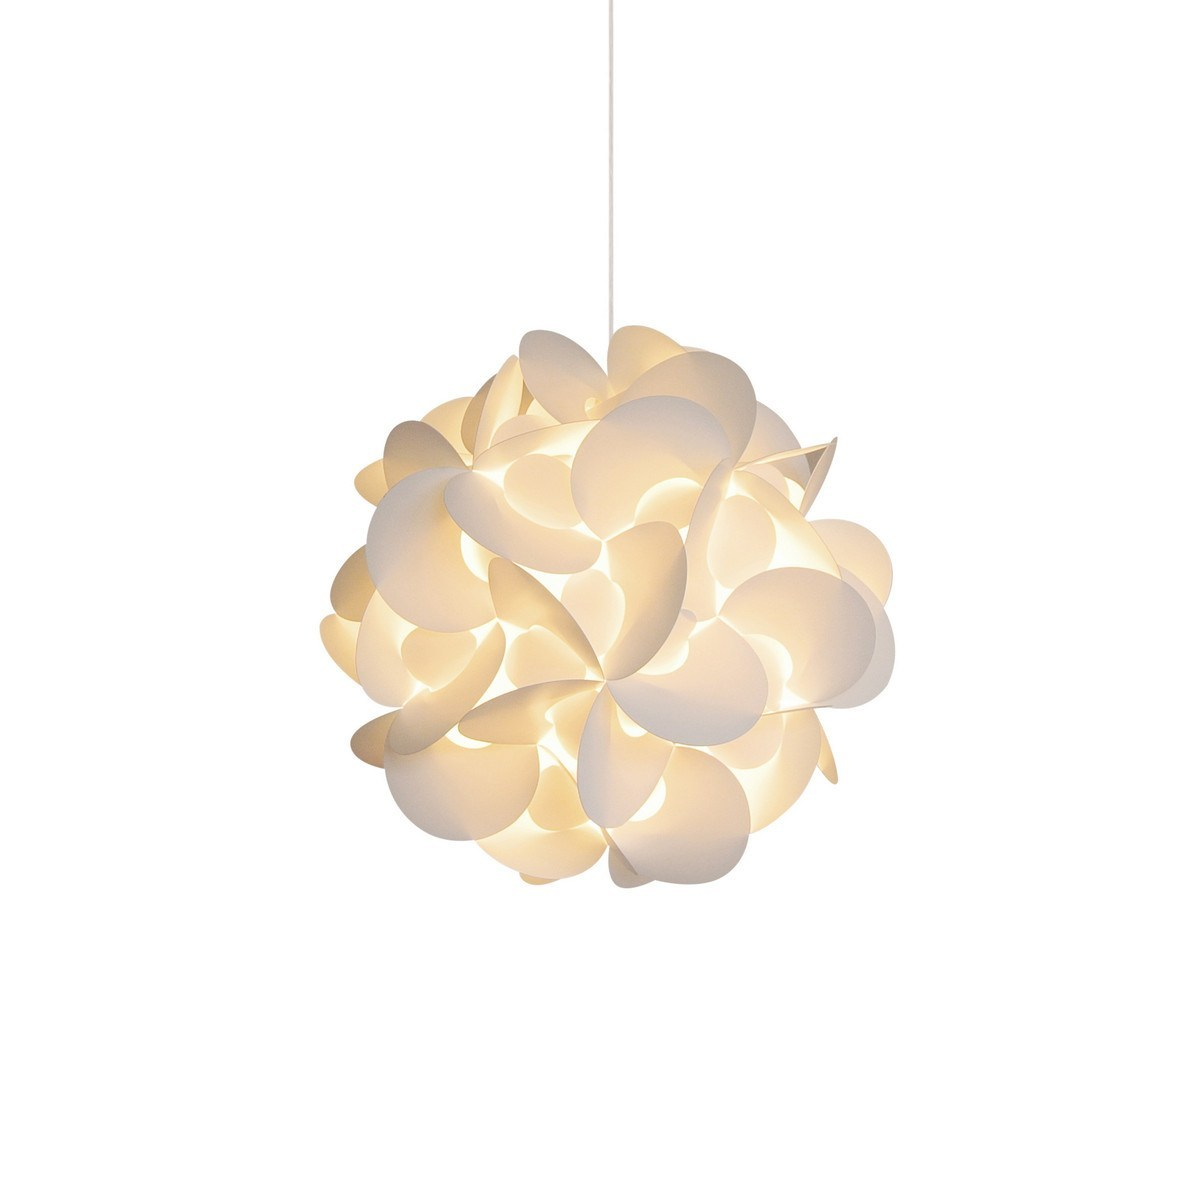 Unique swag hanging pendant lamps light fixtures akari lanterns small rounds hanging pendant light warm white glow aloadofball Image collections